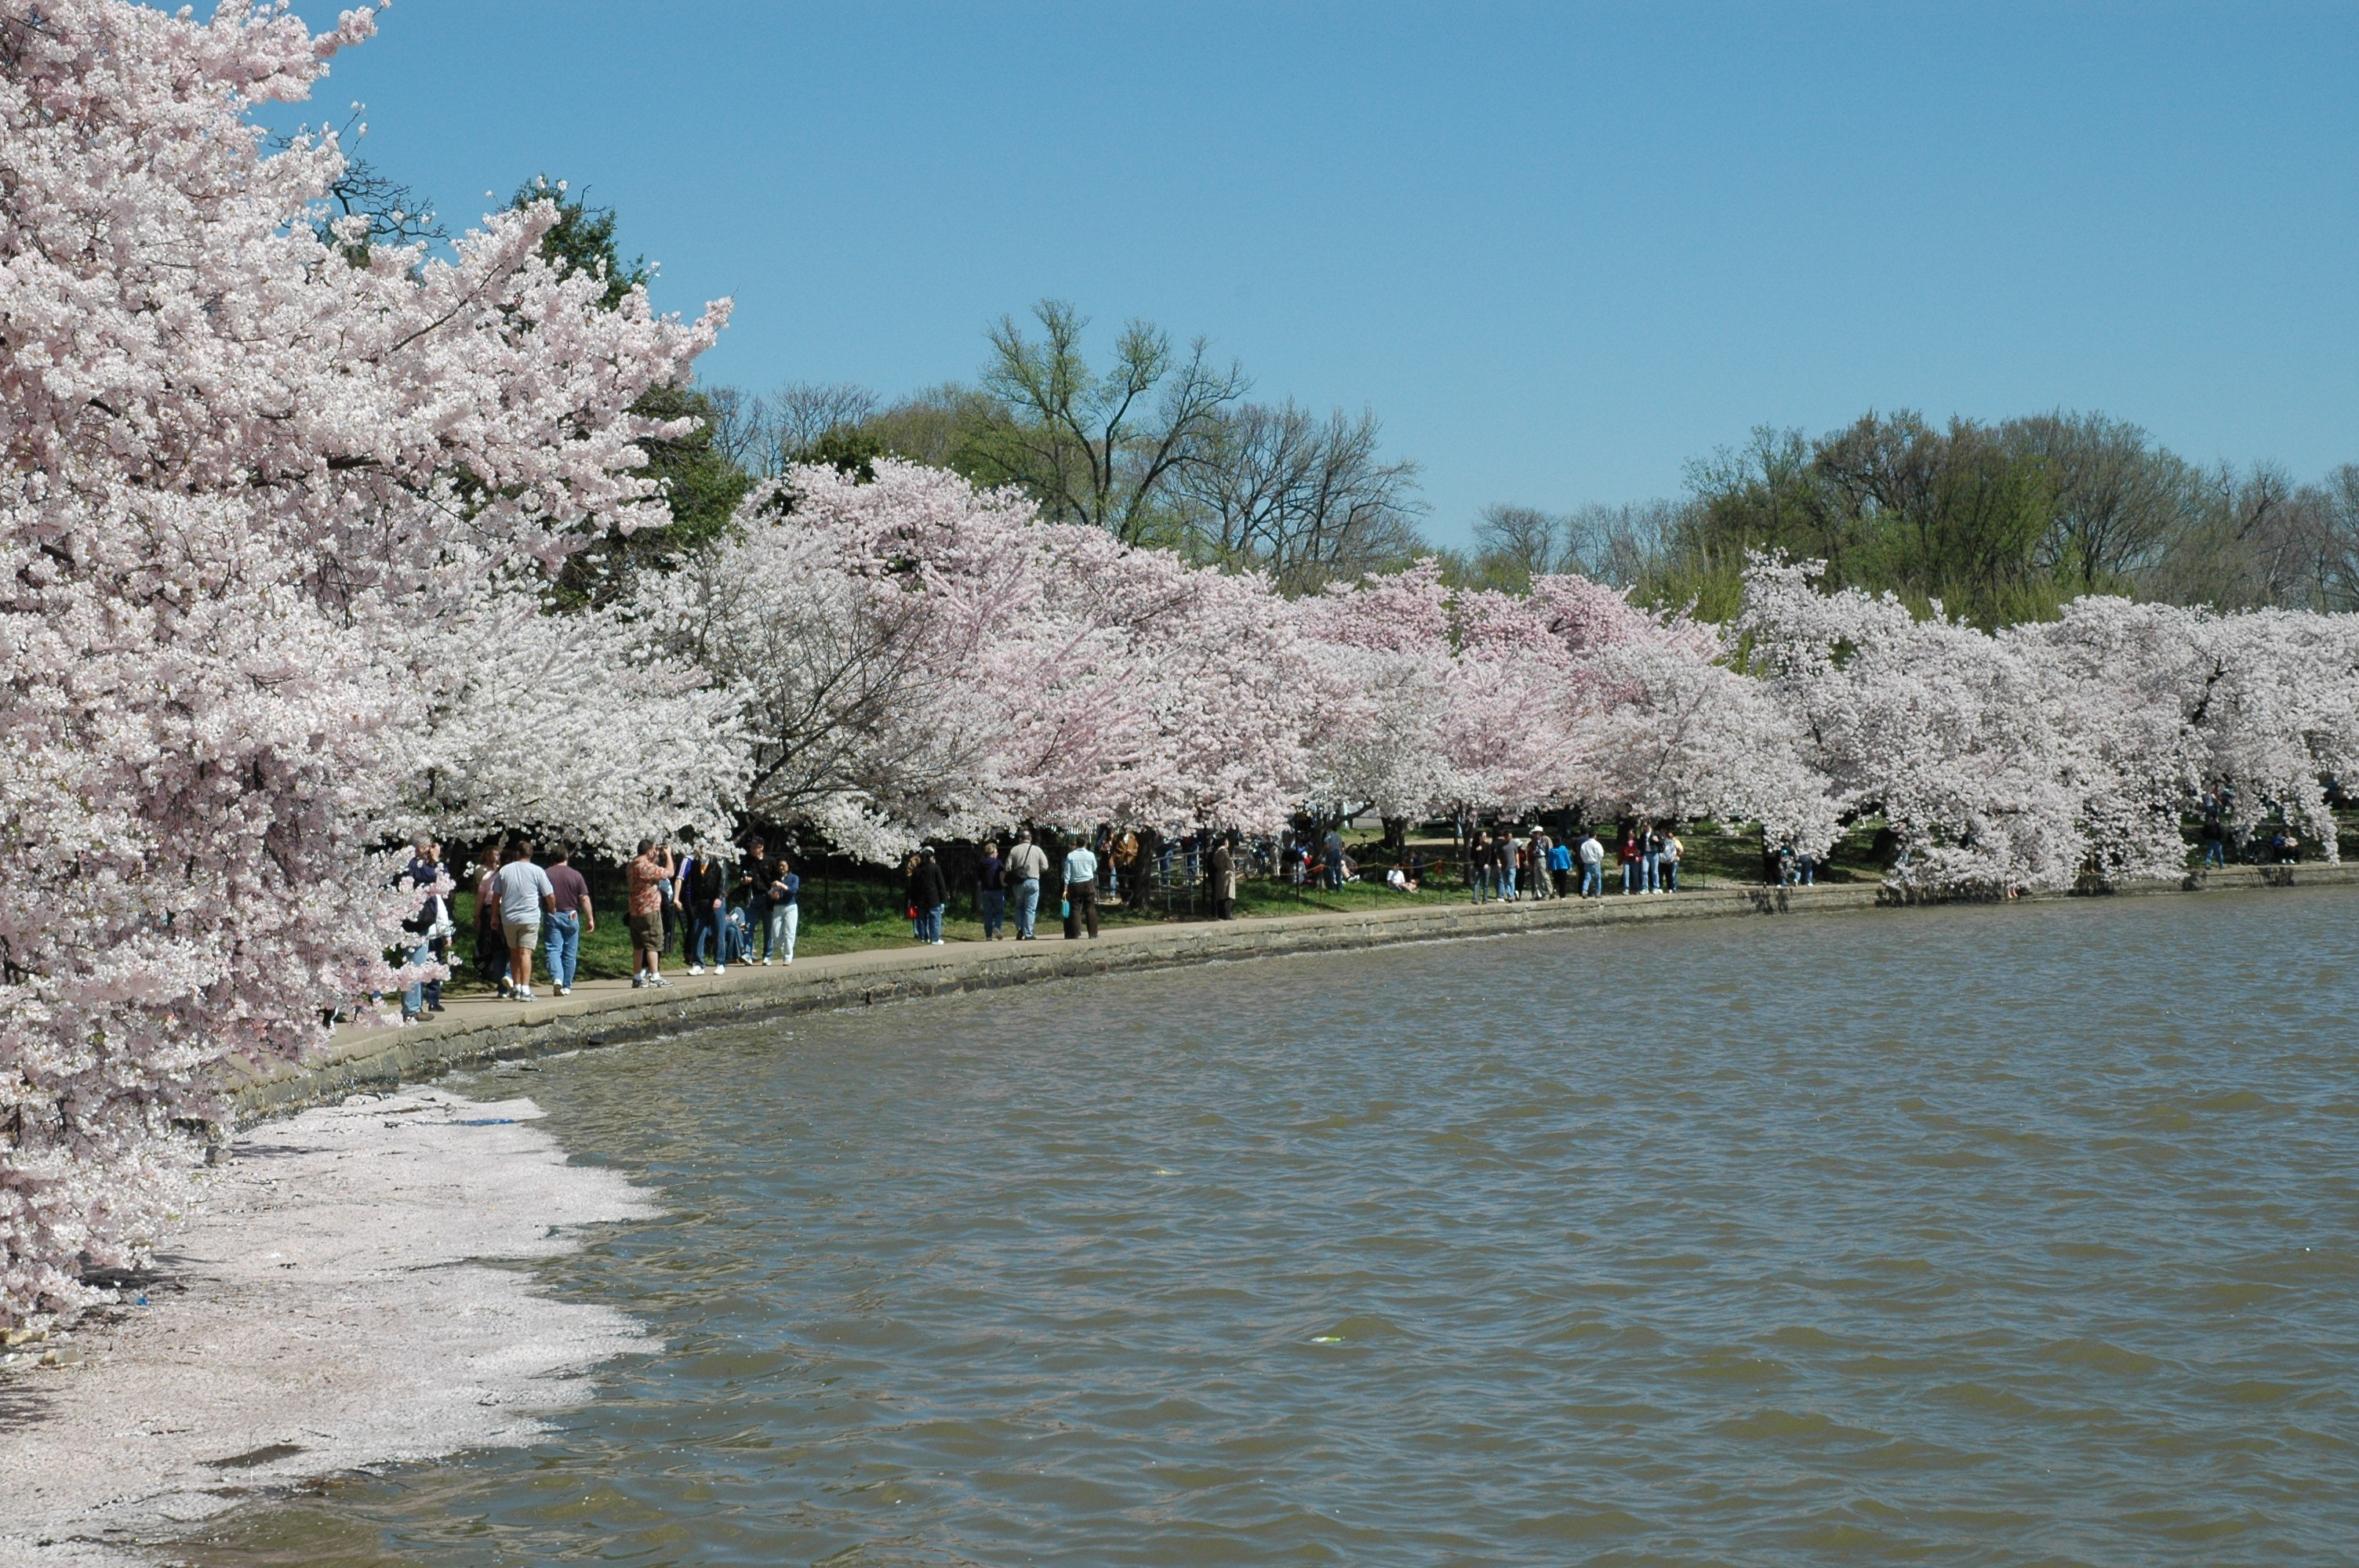 Caring For Cherry Trees In Washington Dc Cherry Blossom Festival U S National Park Service